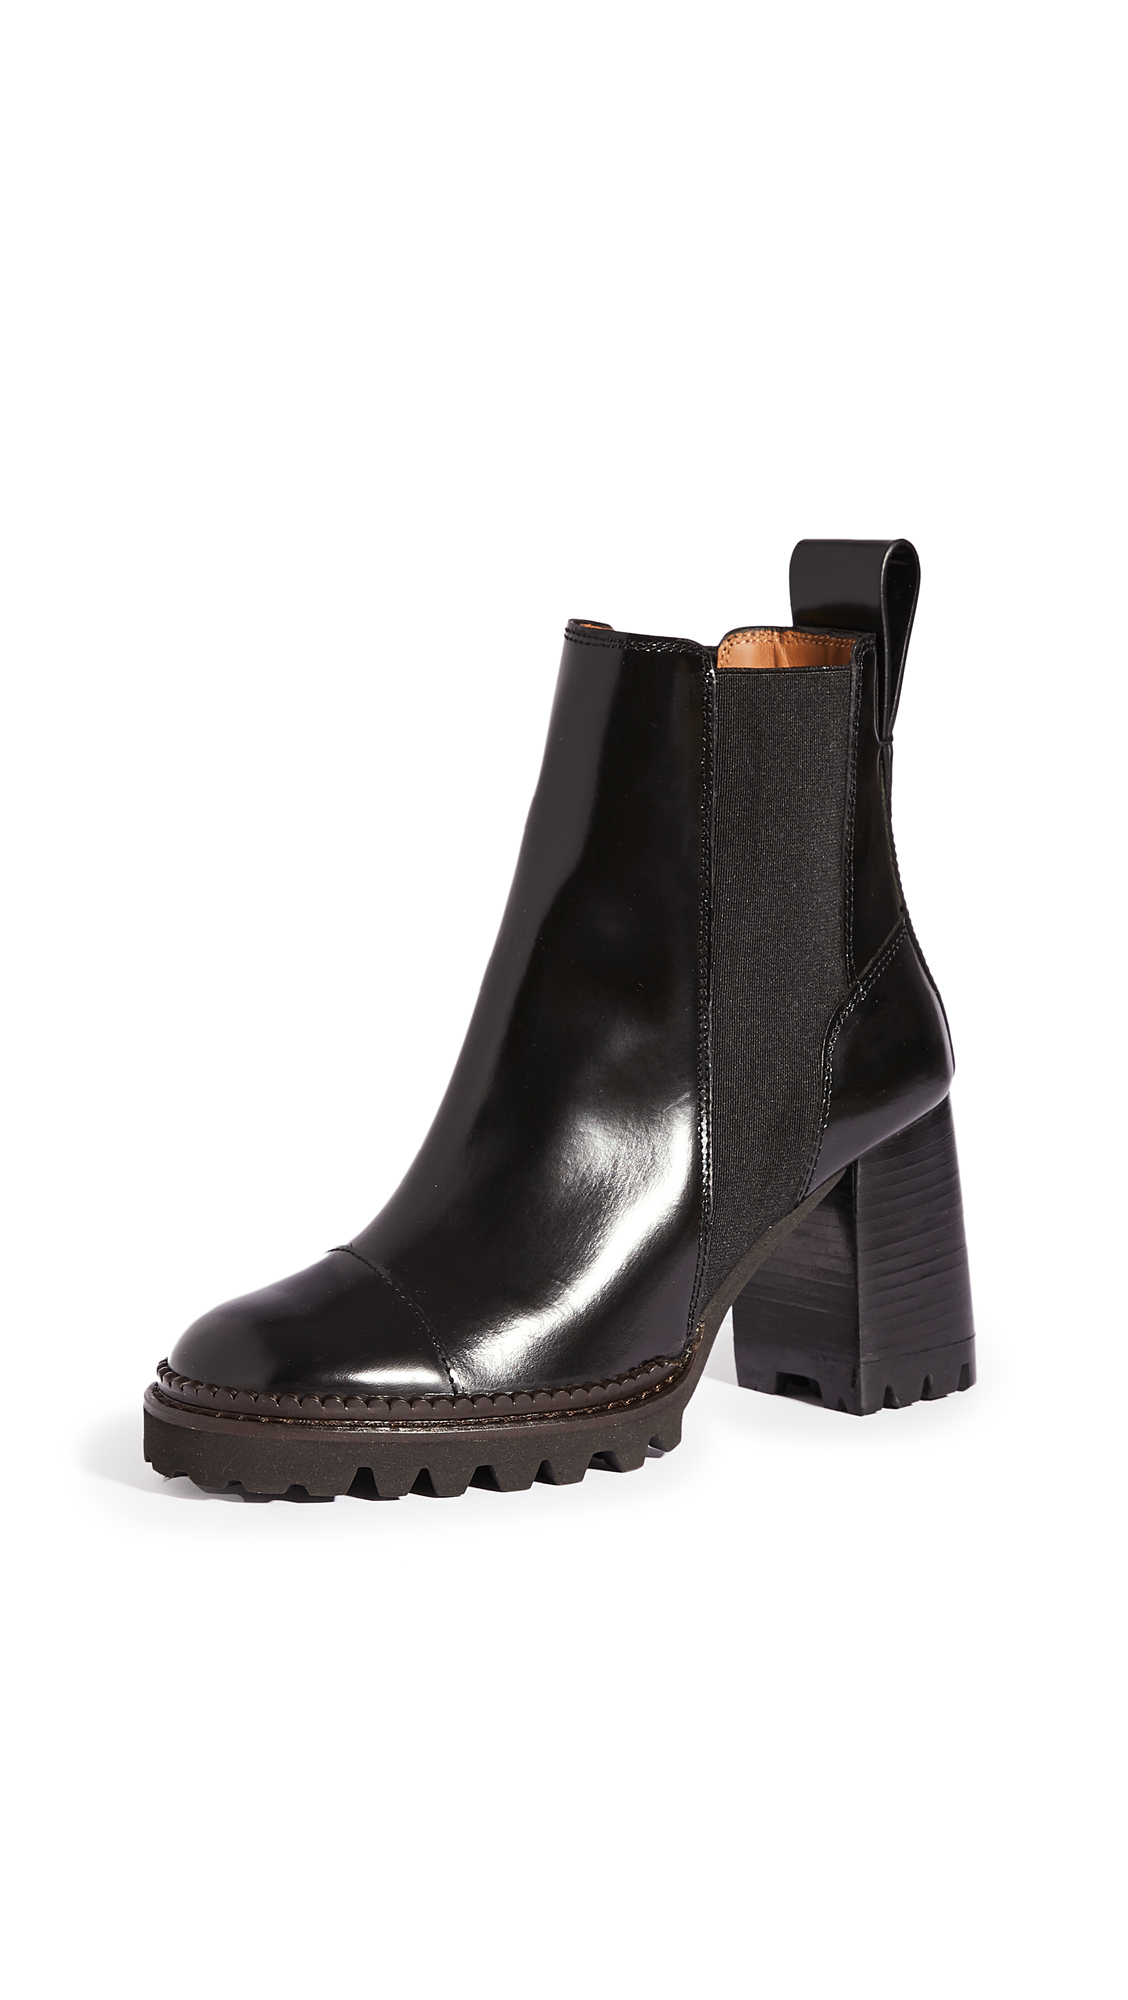 See By Chloé CHELS MALL LUG SOLE BOOTS